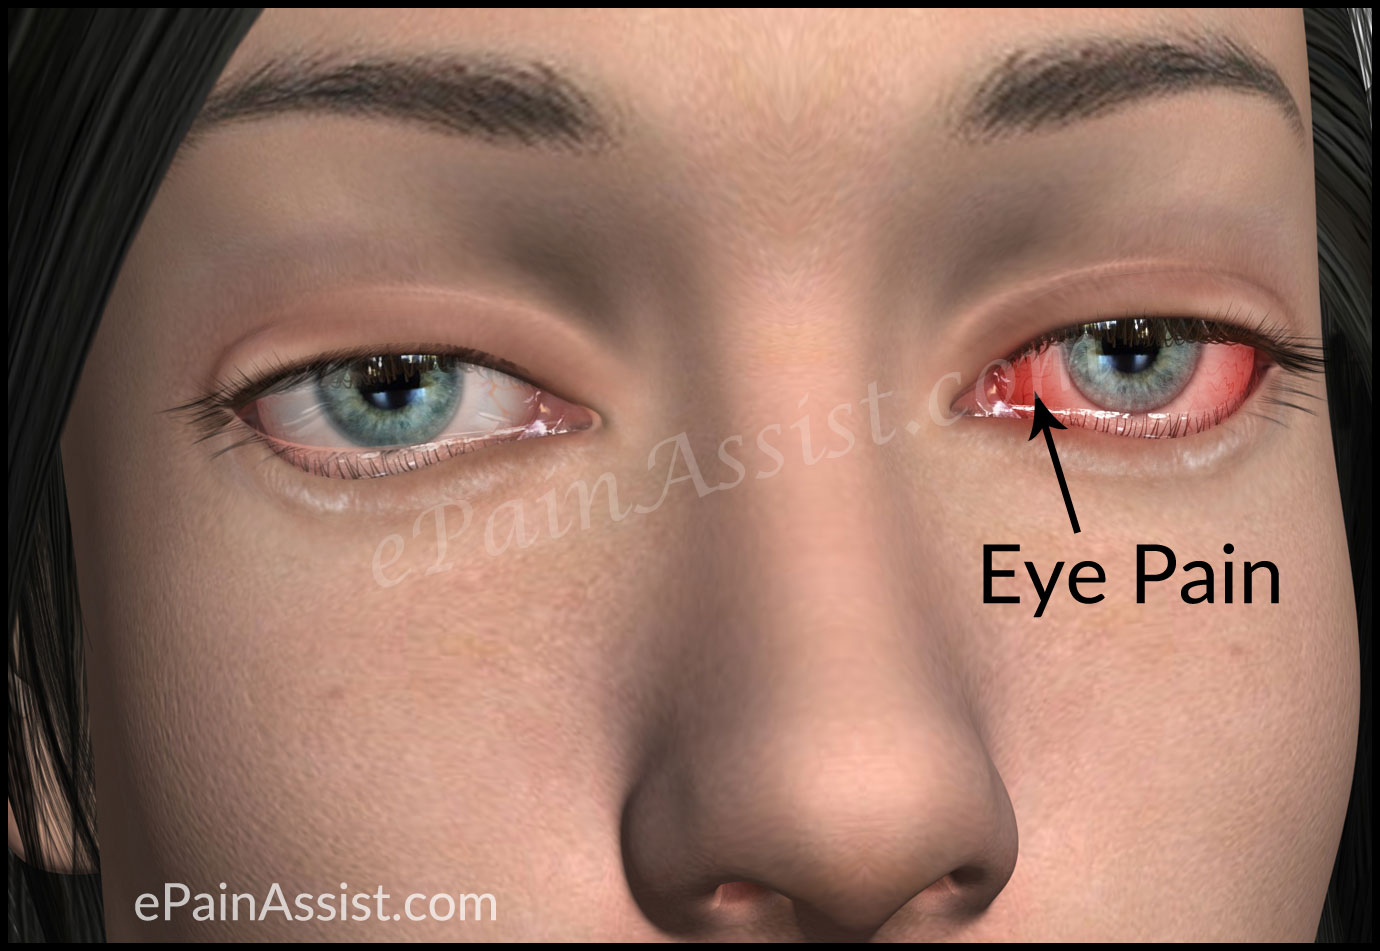 What is Eye Pain?